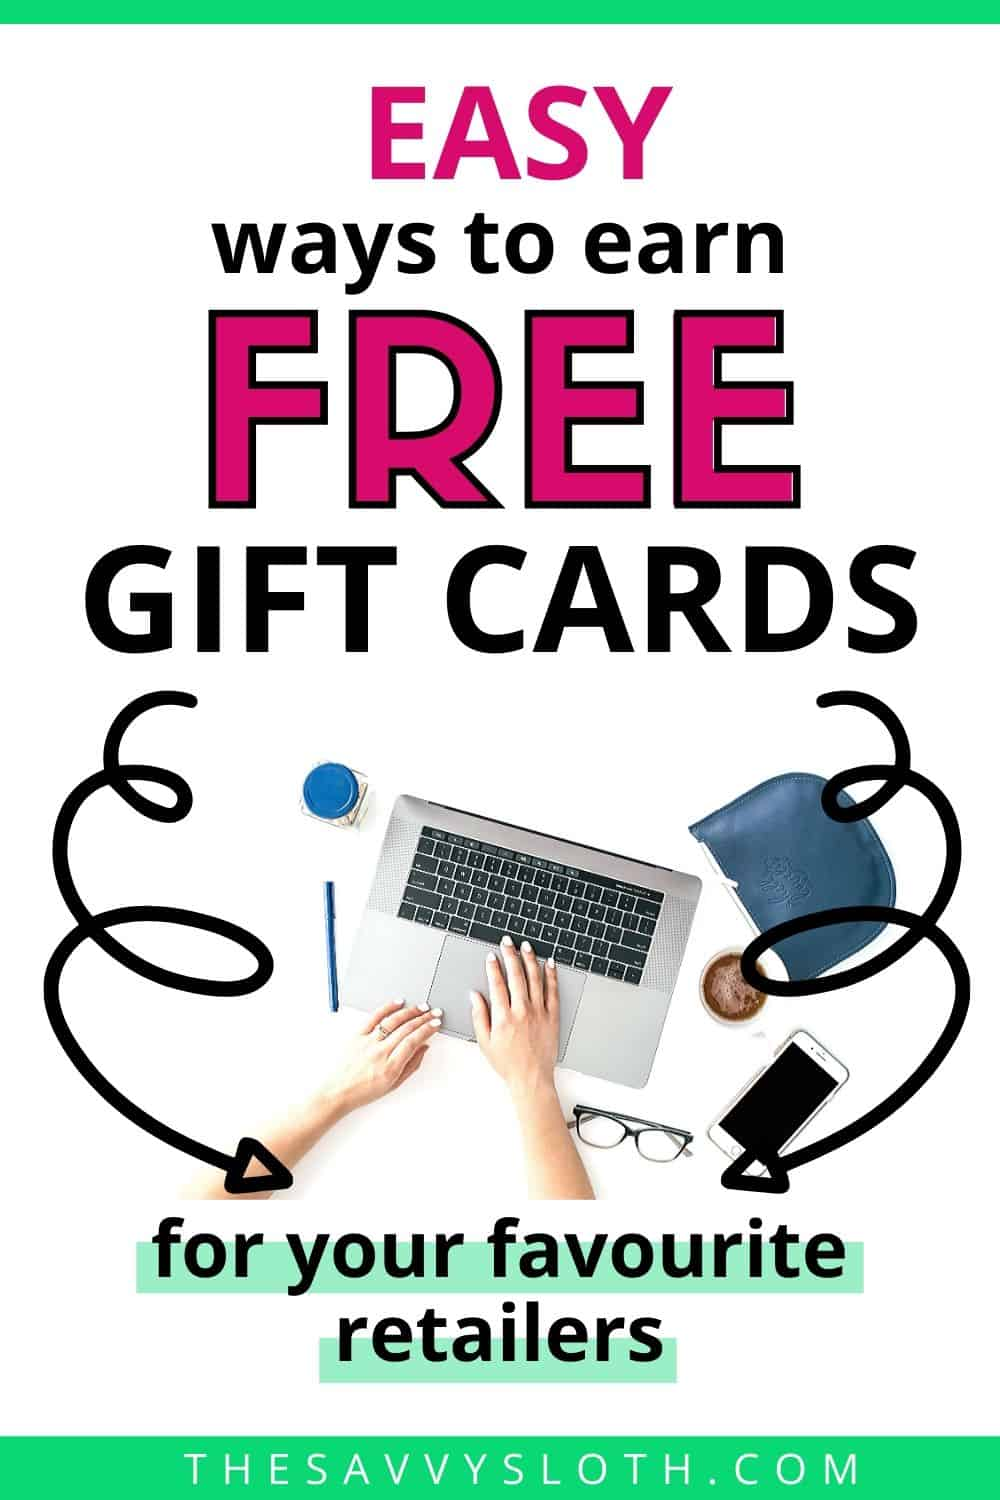 Easy ways to earn free gift cards for your favourite retailers